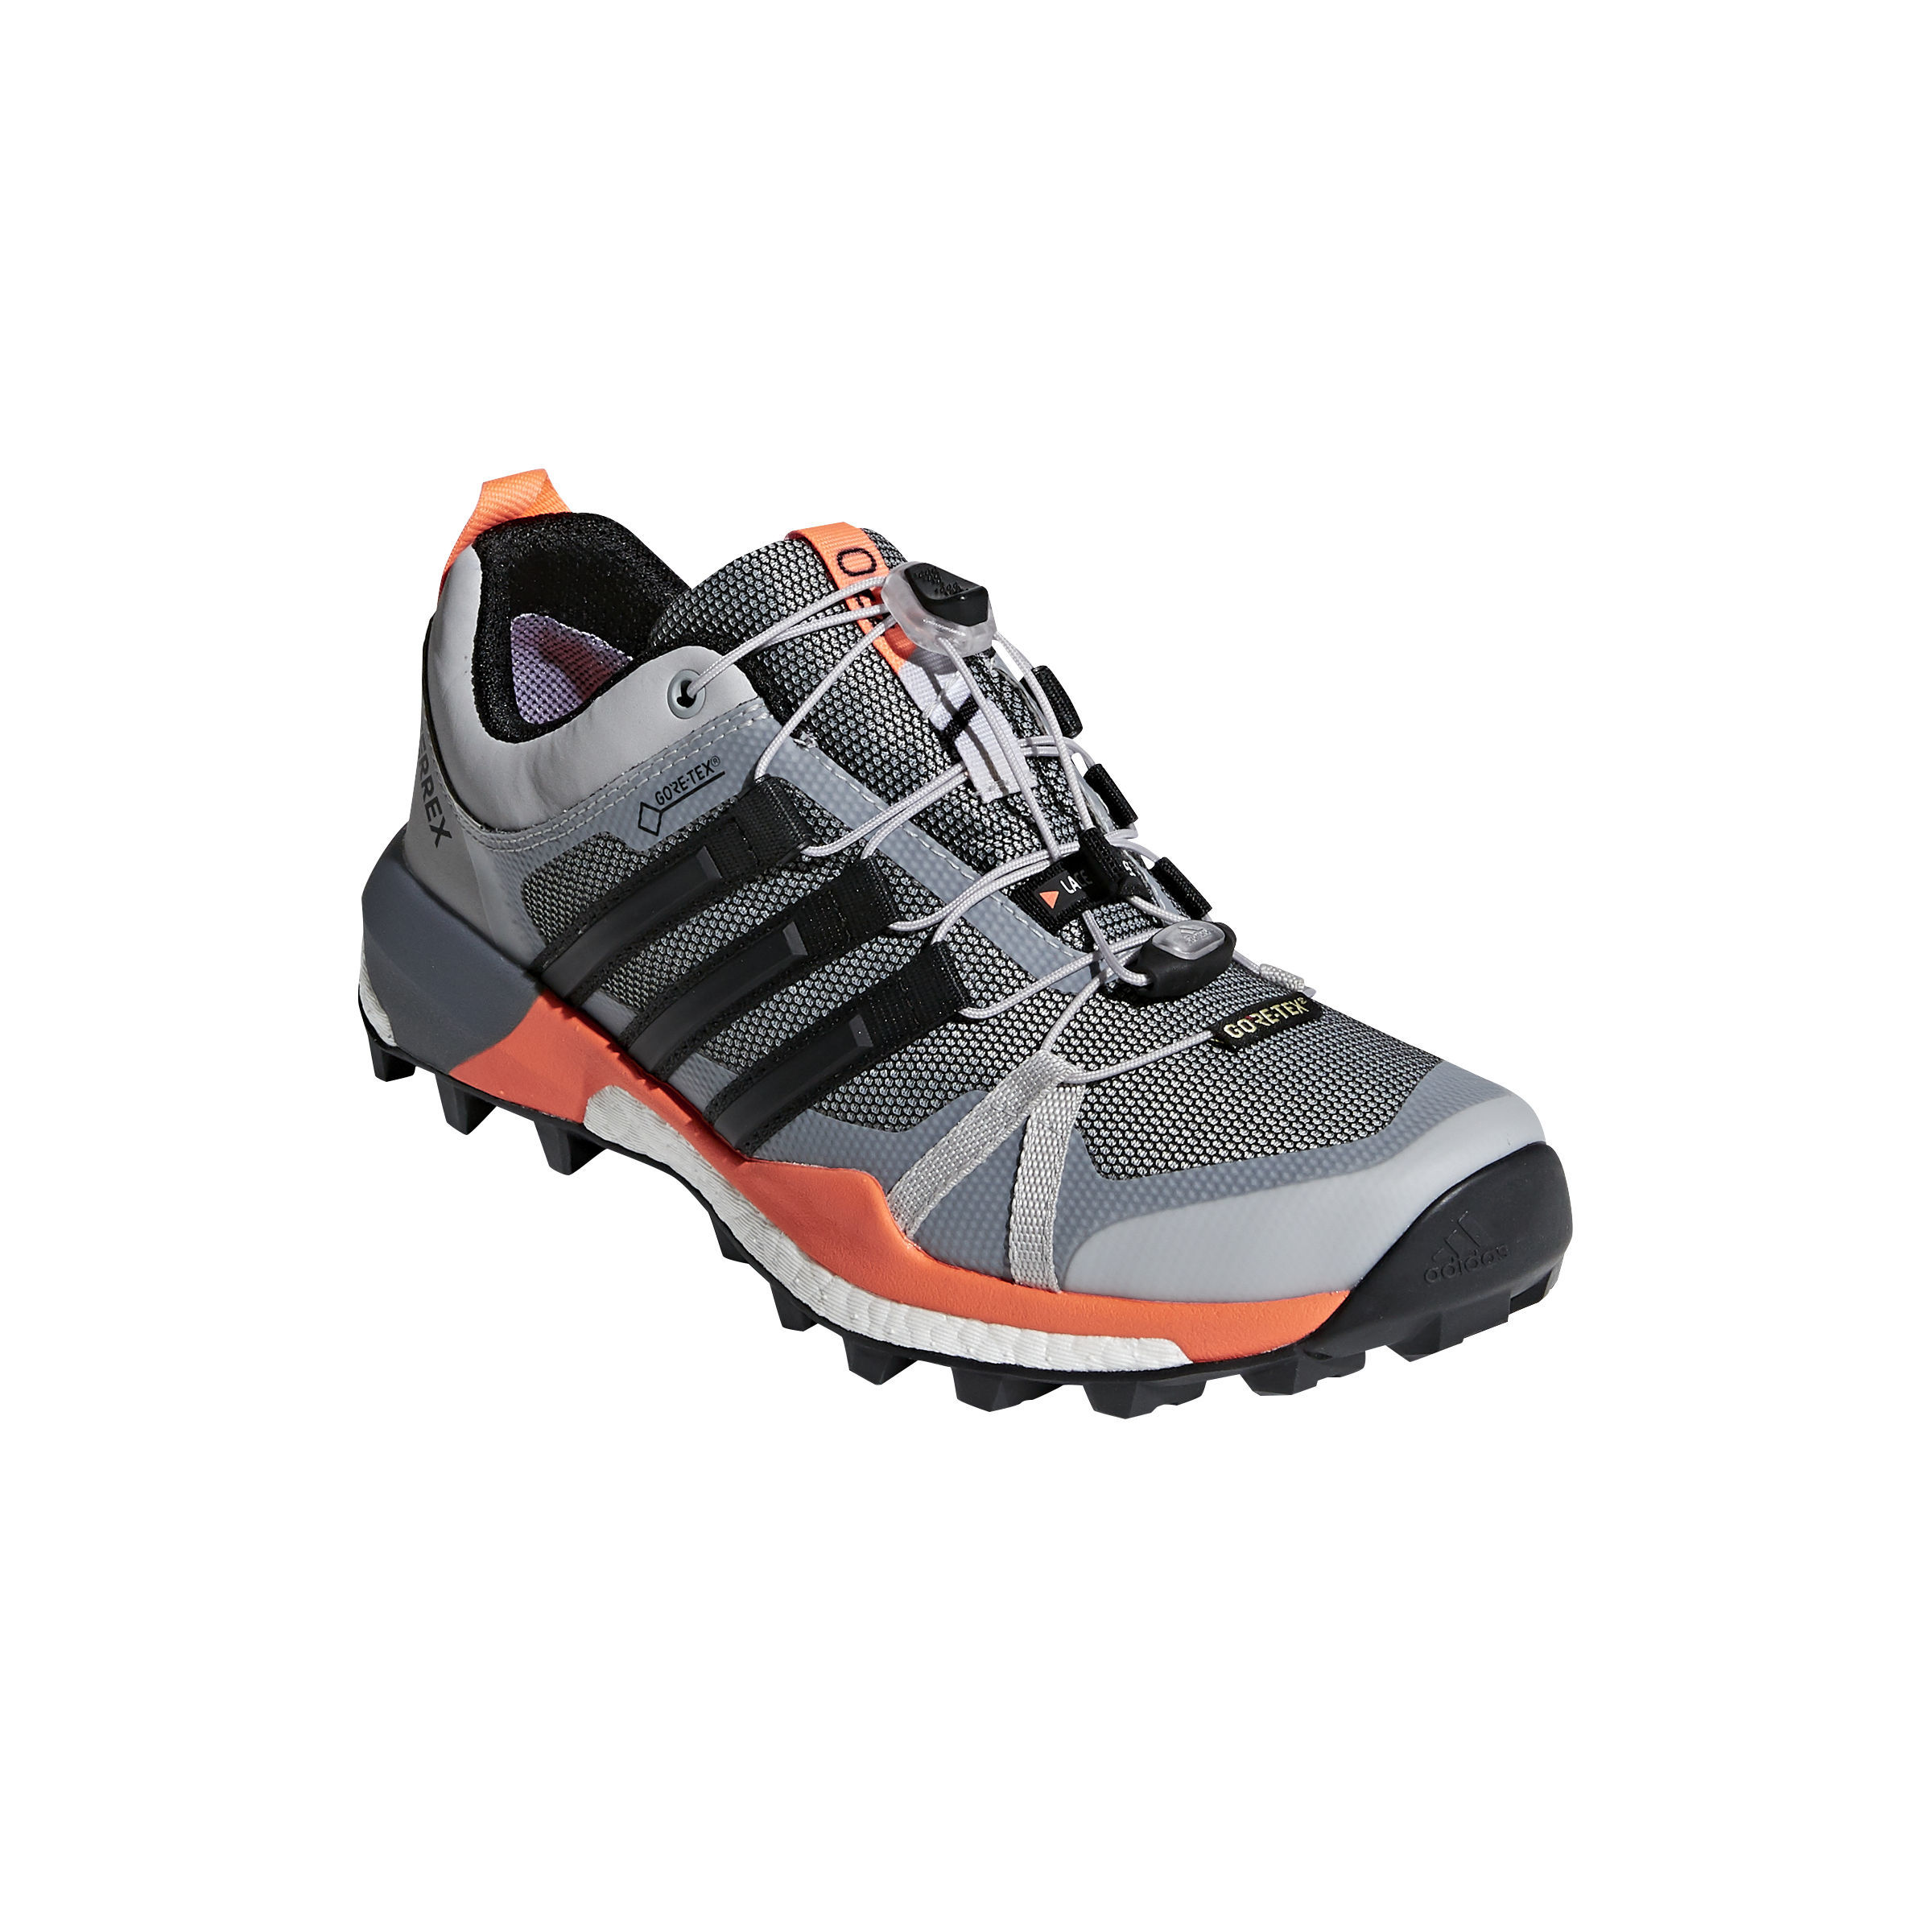 964a2ab819ca66 Adidas Outdoor Terrex Boost GTX Trail Running Shoe - Womens